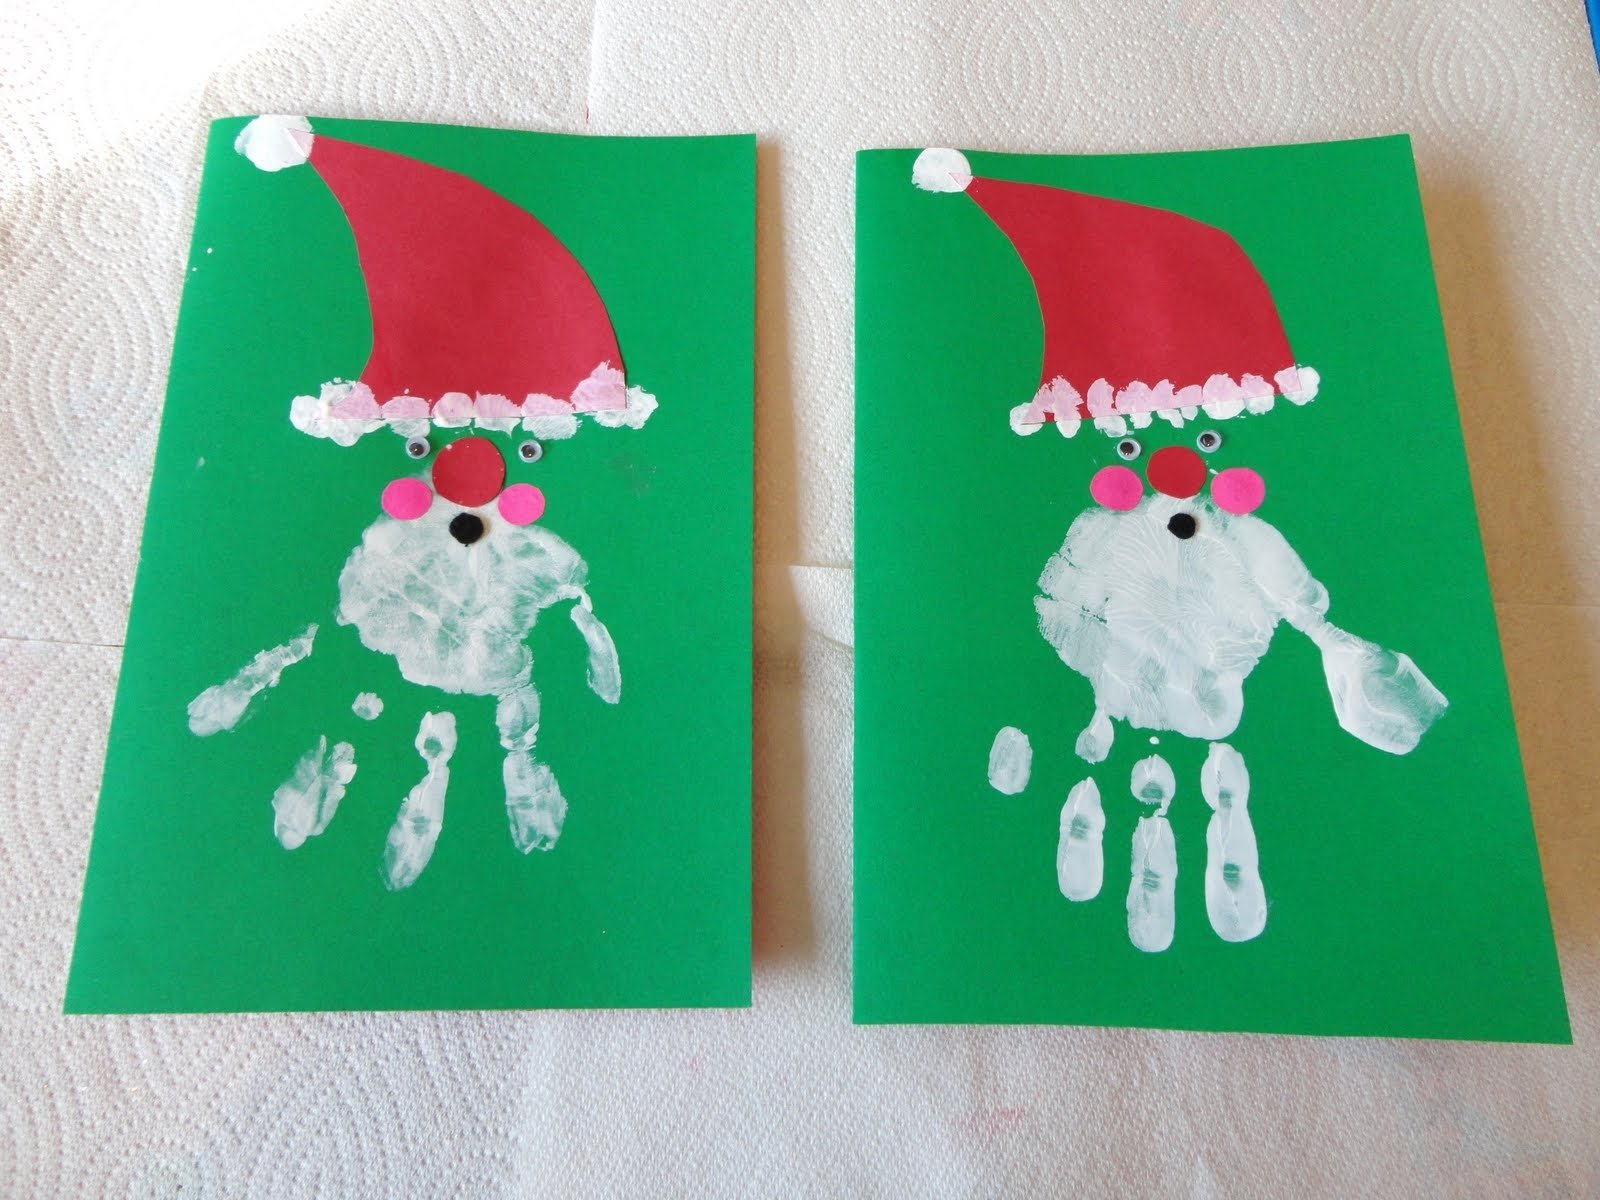 10 Fashionable Christmas Card Picture Ideas Kids christmas card ideas kids make quotes lol rofl dma homes 30203 2 2020